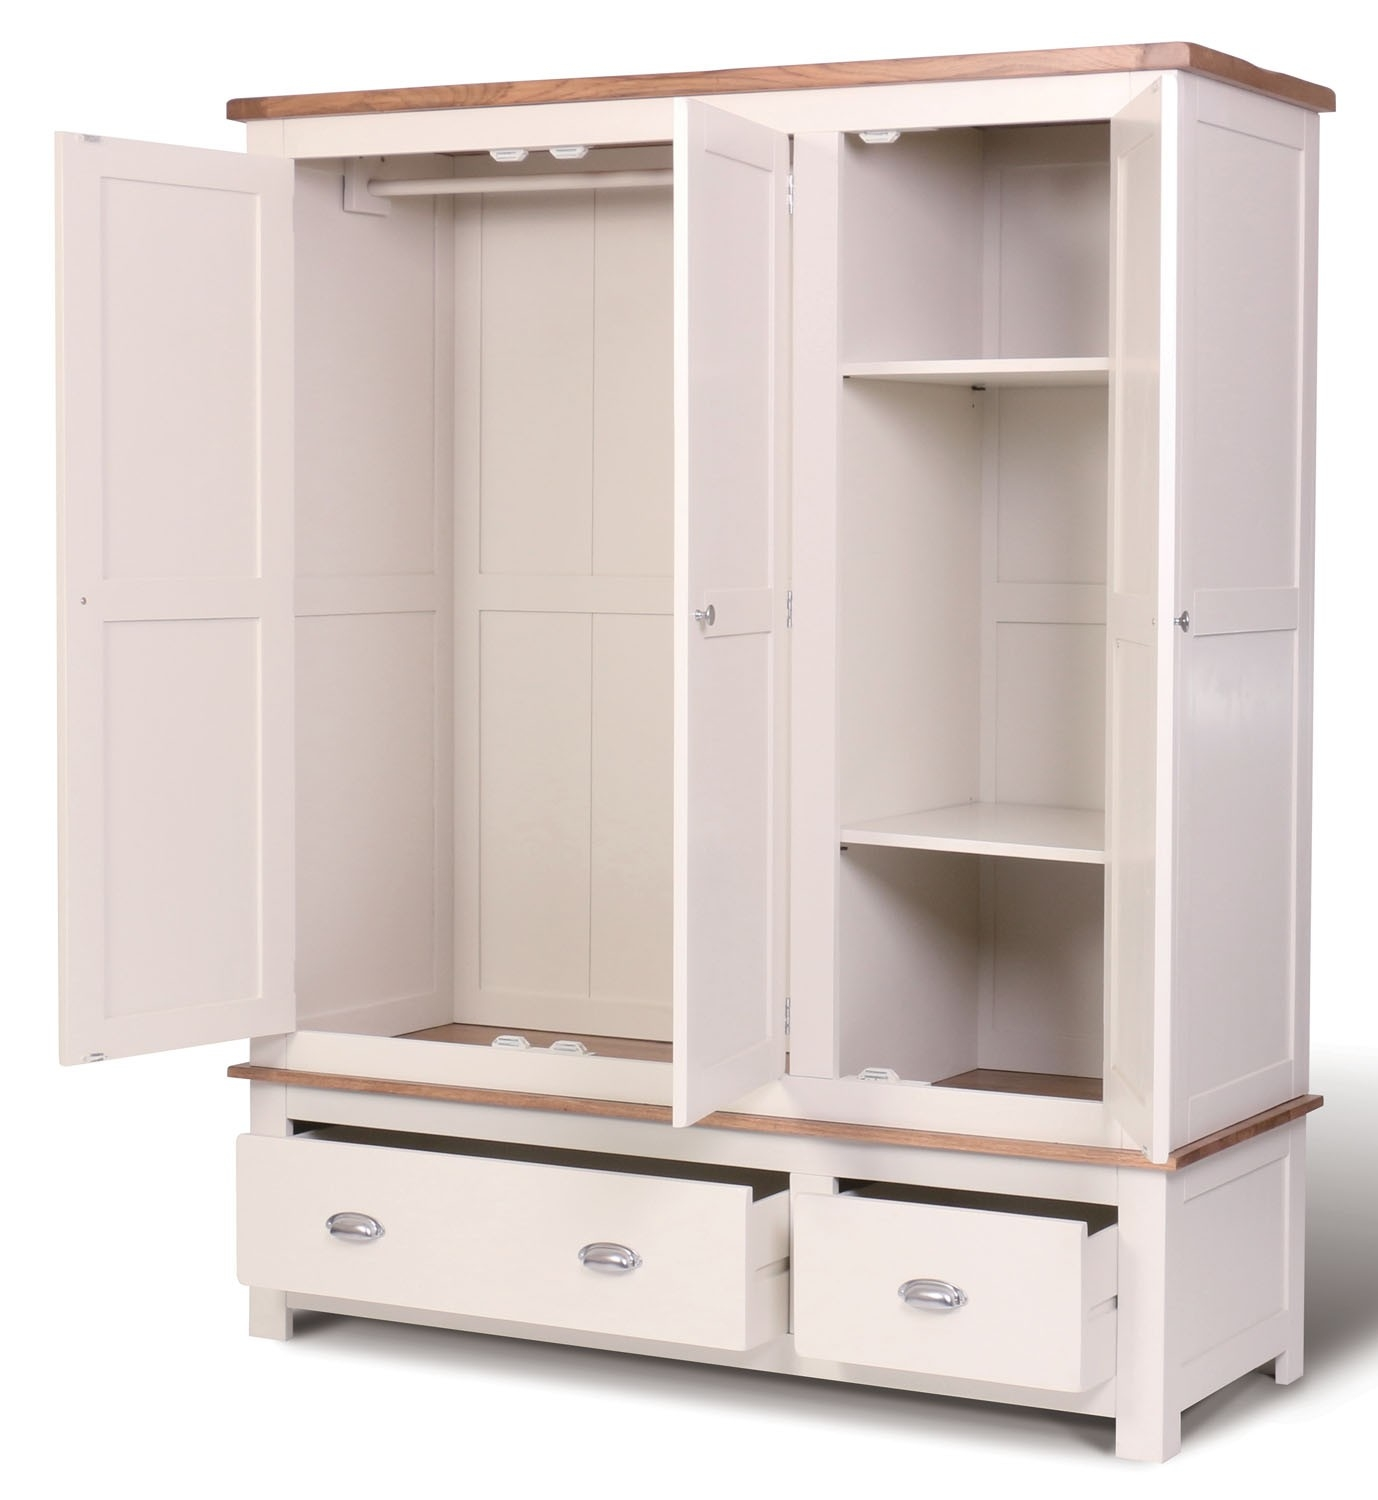 Ascot Triple Wardrobe With Drawers Wardrobes Bedroom Hallowood With Regard To Wardrobes With Drawers And Shelves (Image 1 of 15)